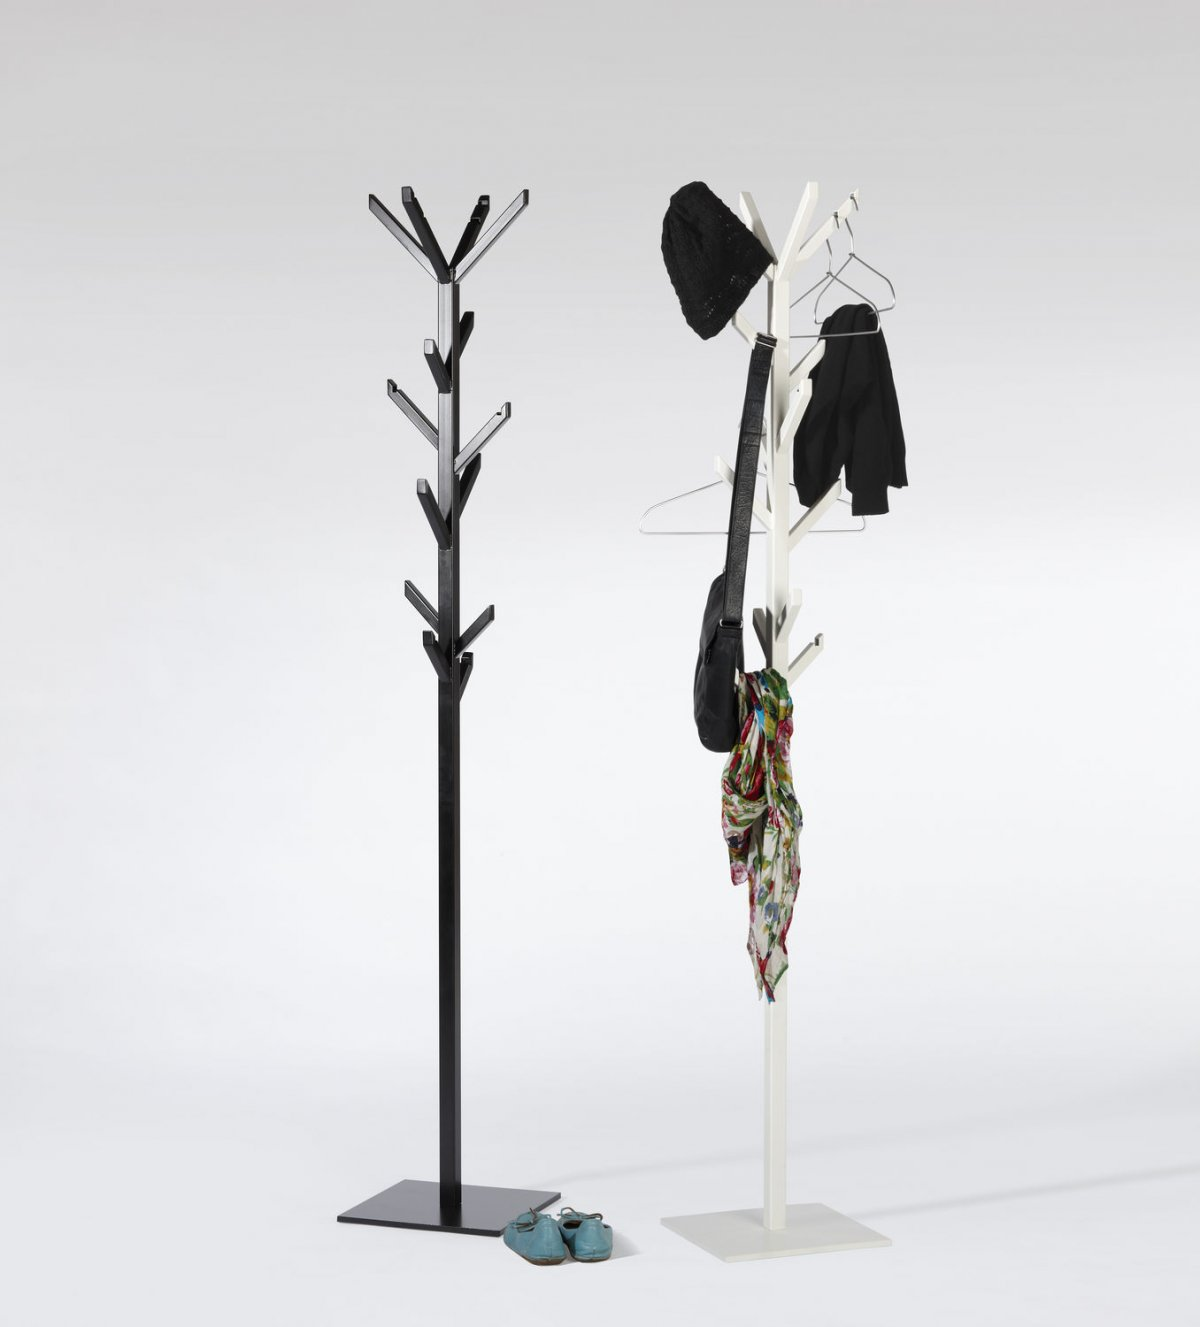 unique standing coat rack in two option colors which are black and white